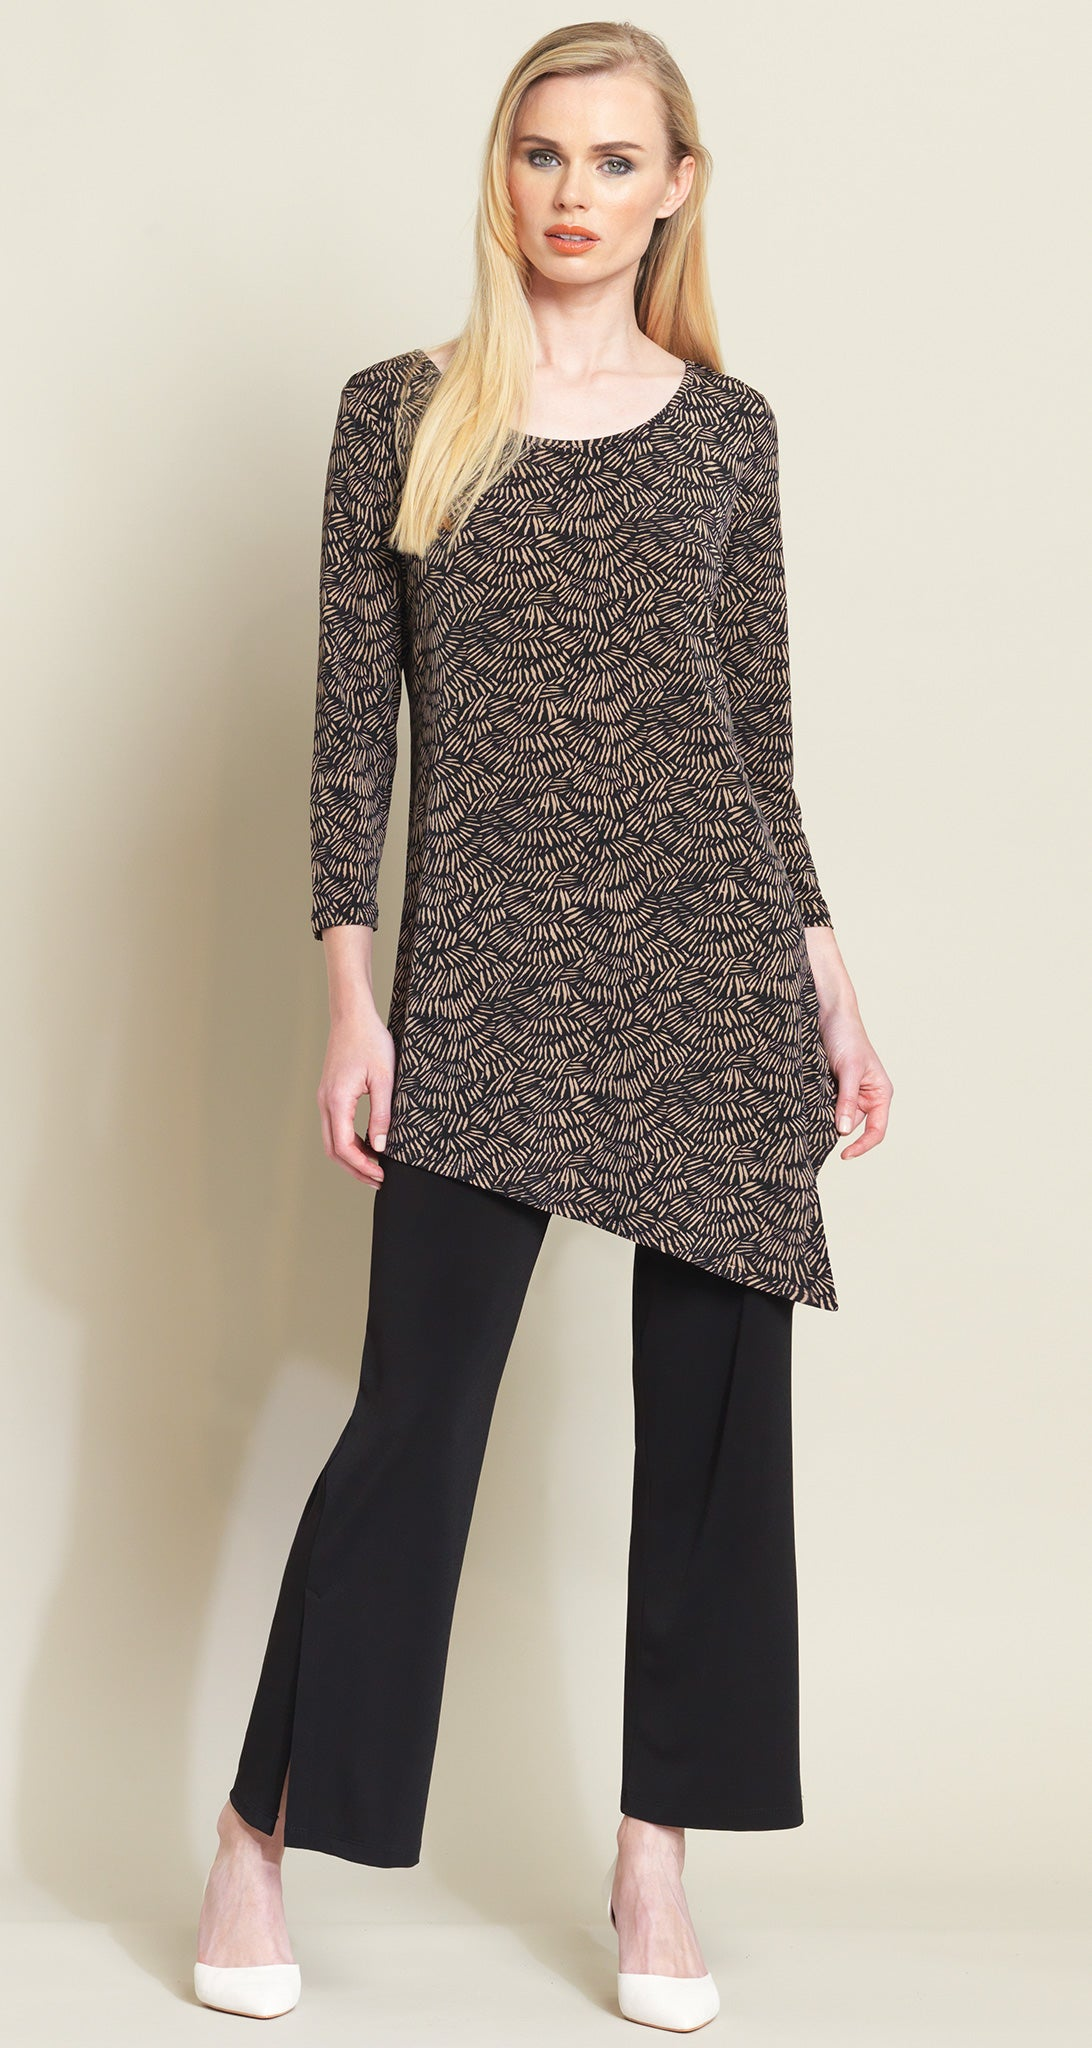 Pine Needle Print Angle Hem Tunic - Black/Copper - Final Sale! - Clara Sunwoo